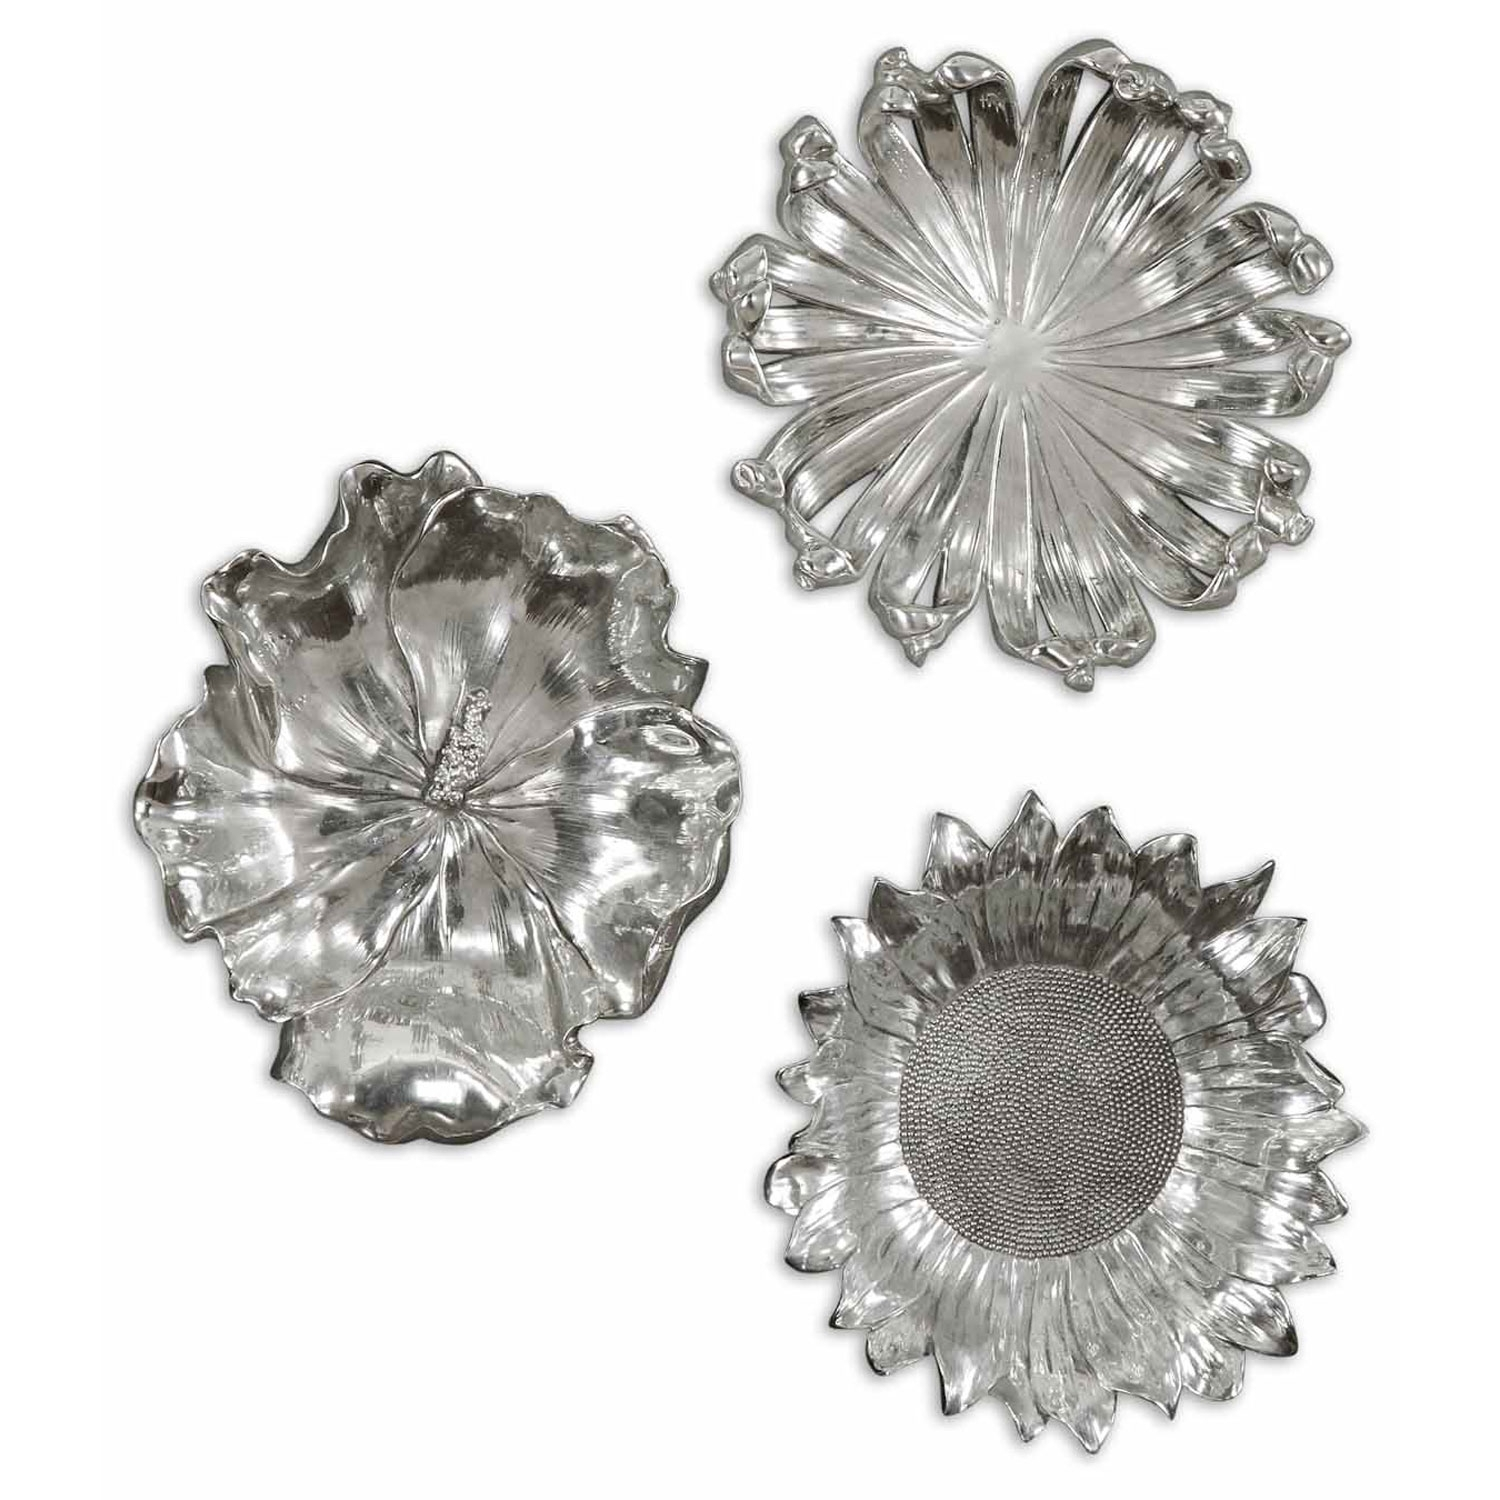 Uttermost Silver Flowers Metal Wall Art, Set Of Three 08503 | Bellacor Throughout Recent Silver Wall Art (Gallery 5 of 20)